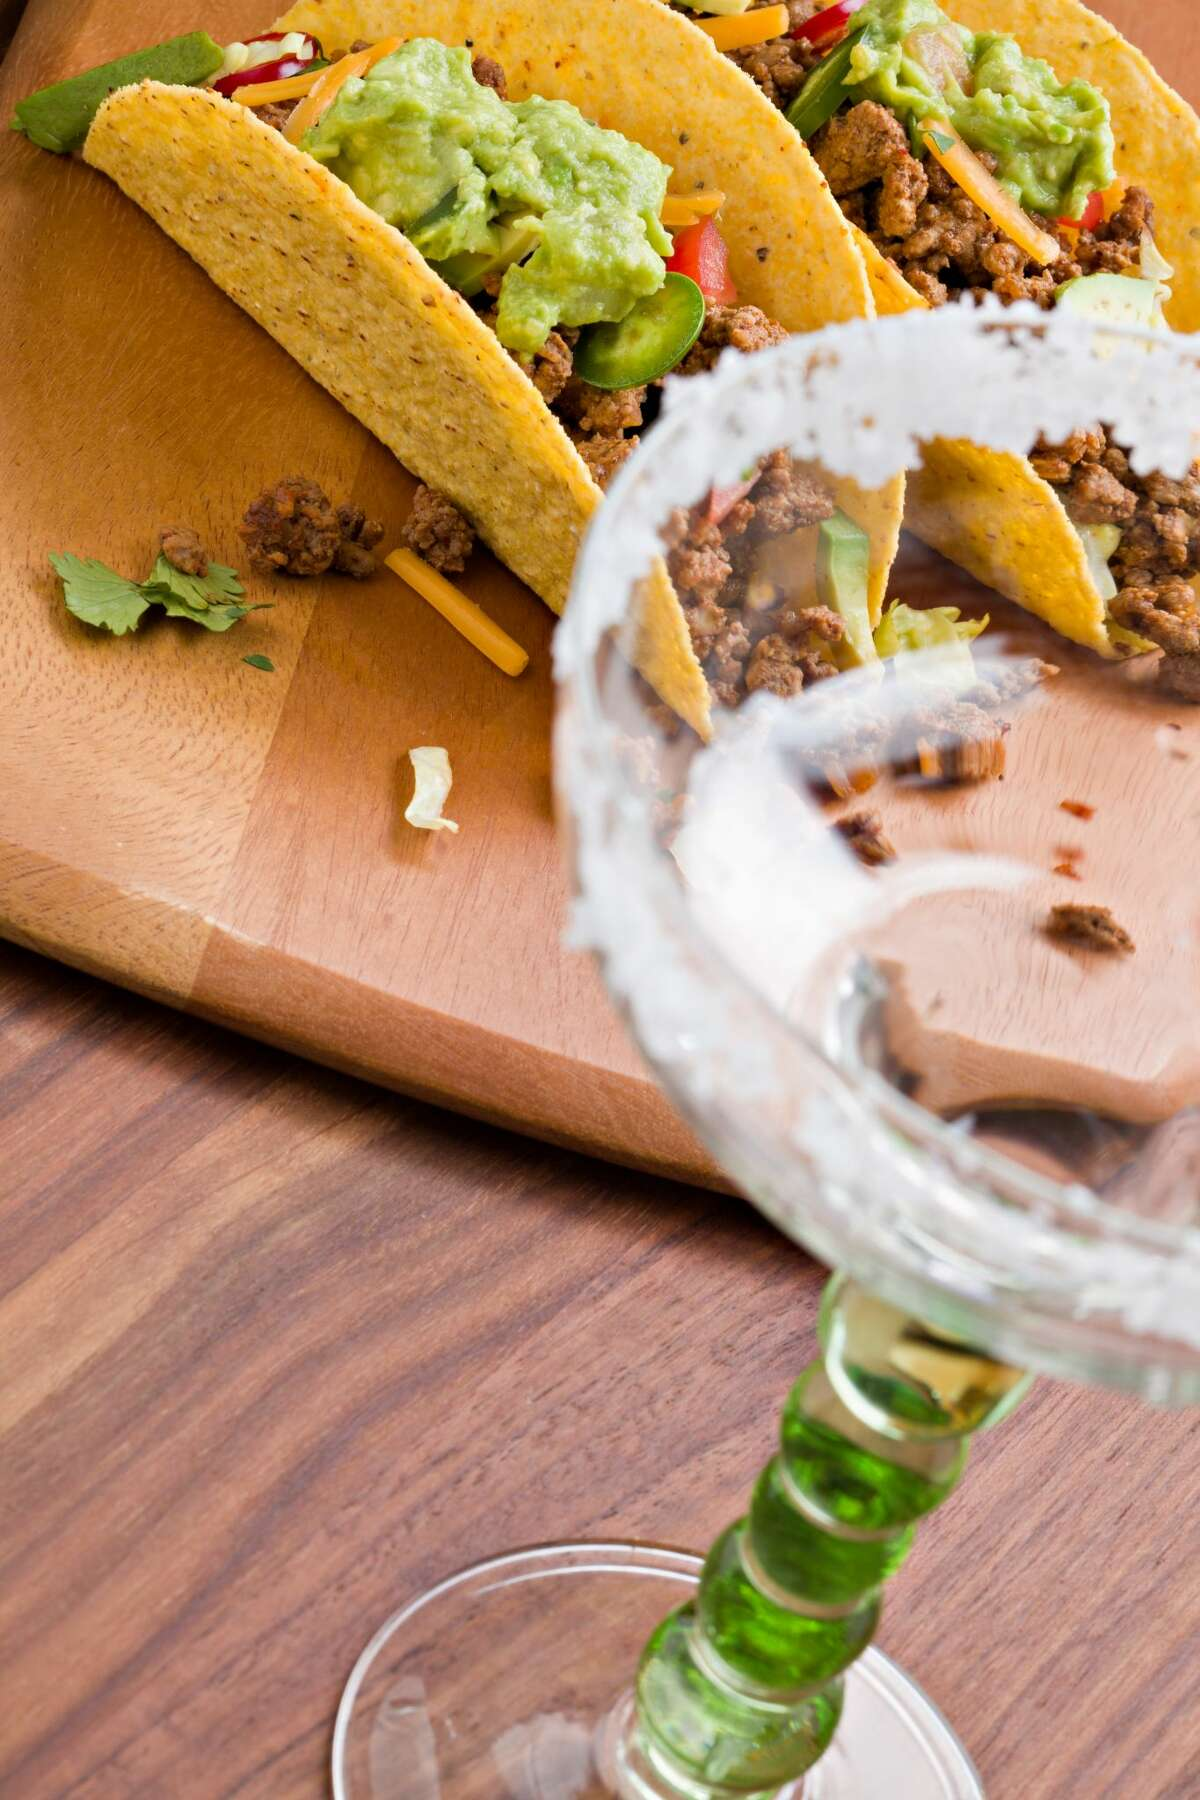 We Love Margaritas and Tacos Bash will be Saturday, Aug. 10 from 4 to 10 p.m. in downtown San Antonio. Tickets and more information can be purchased here.